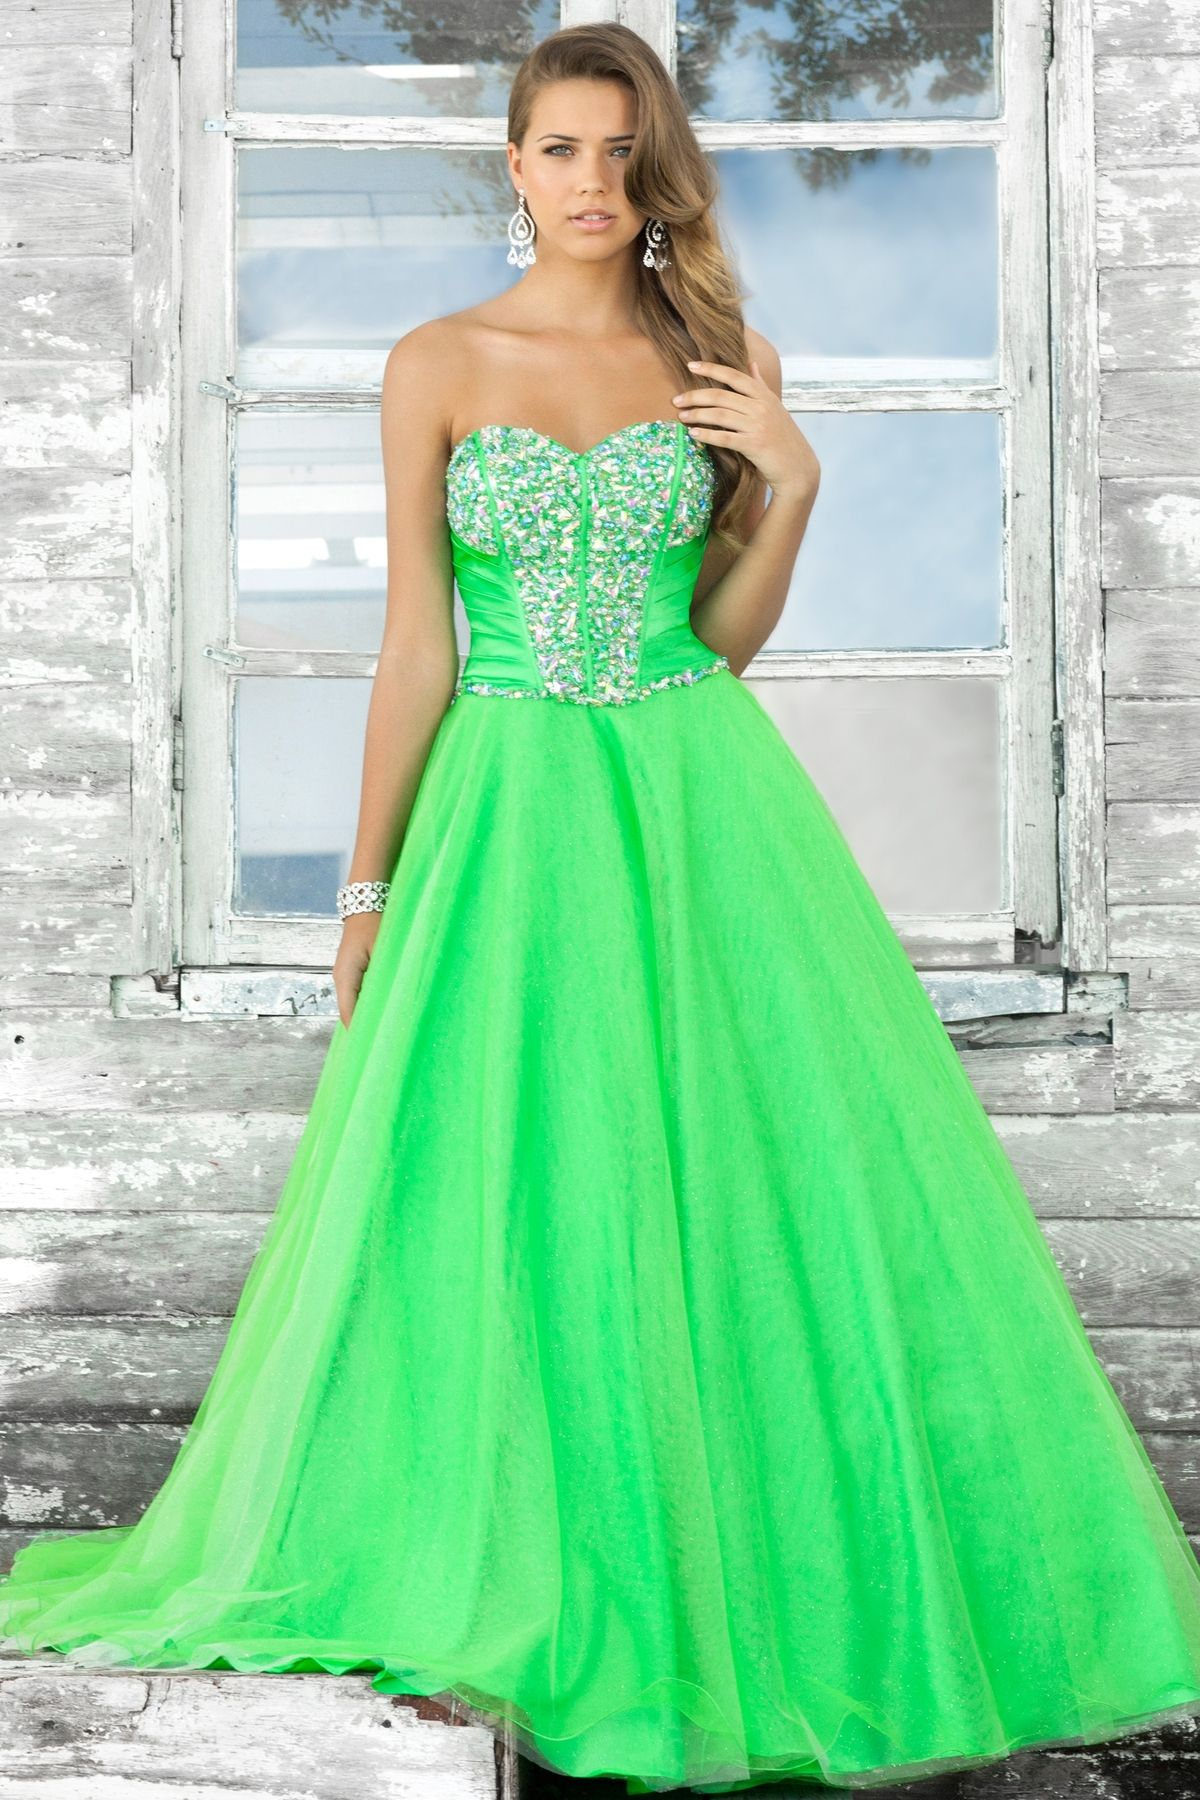 Beautiful apple green ball gown prom dress http://www.blushprom ...